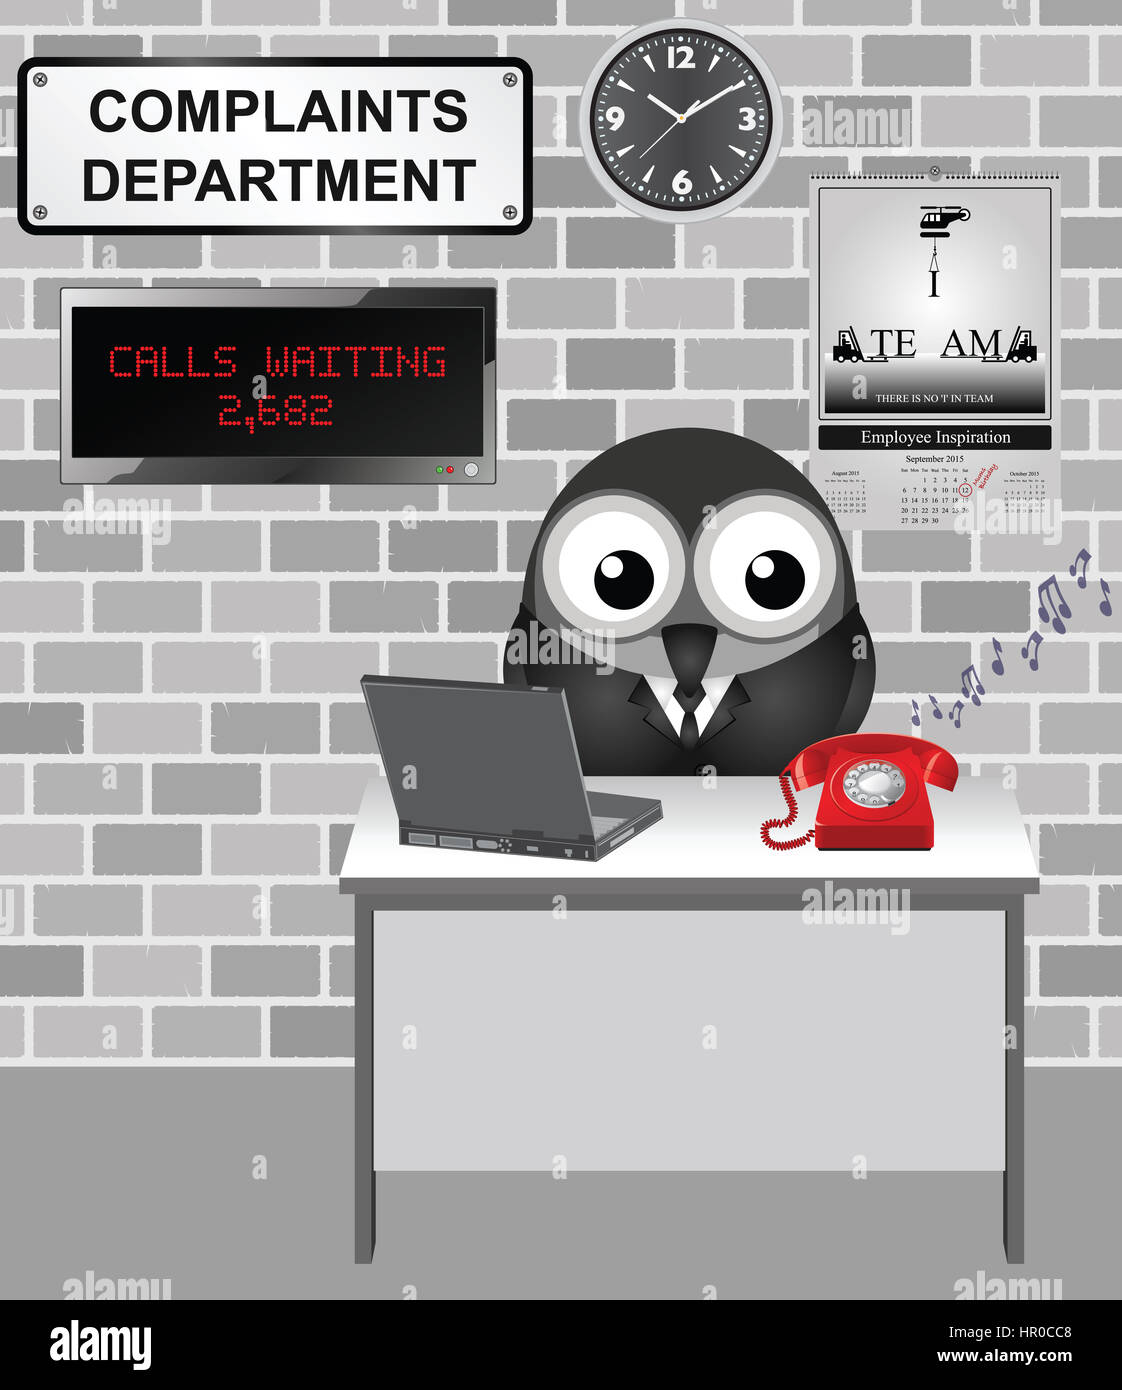 Comical bird worker in the complaints department fed up listening to people complaining and ignoring incoming customer - Stock Image